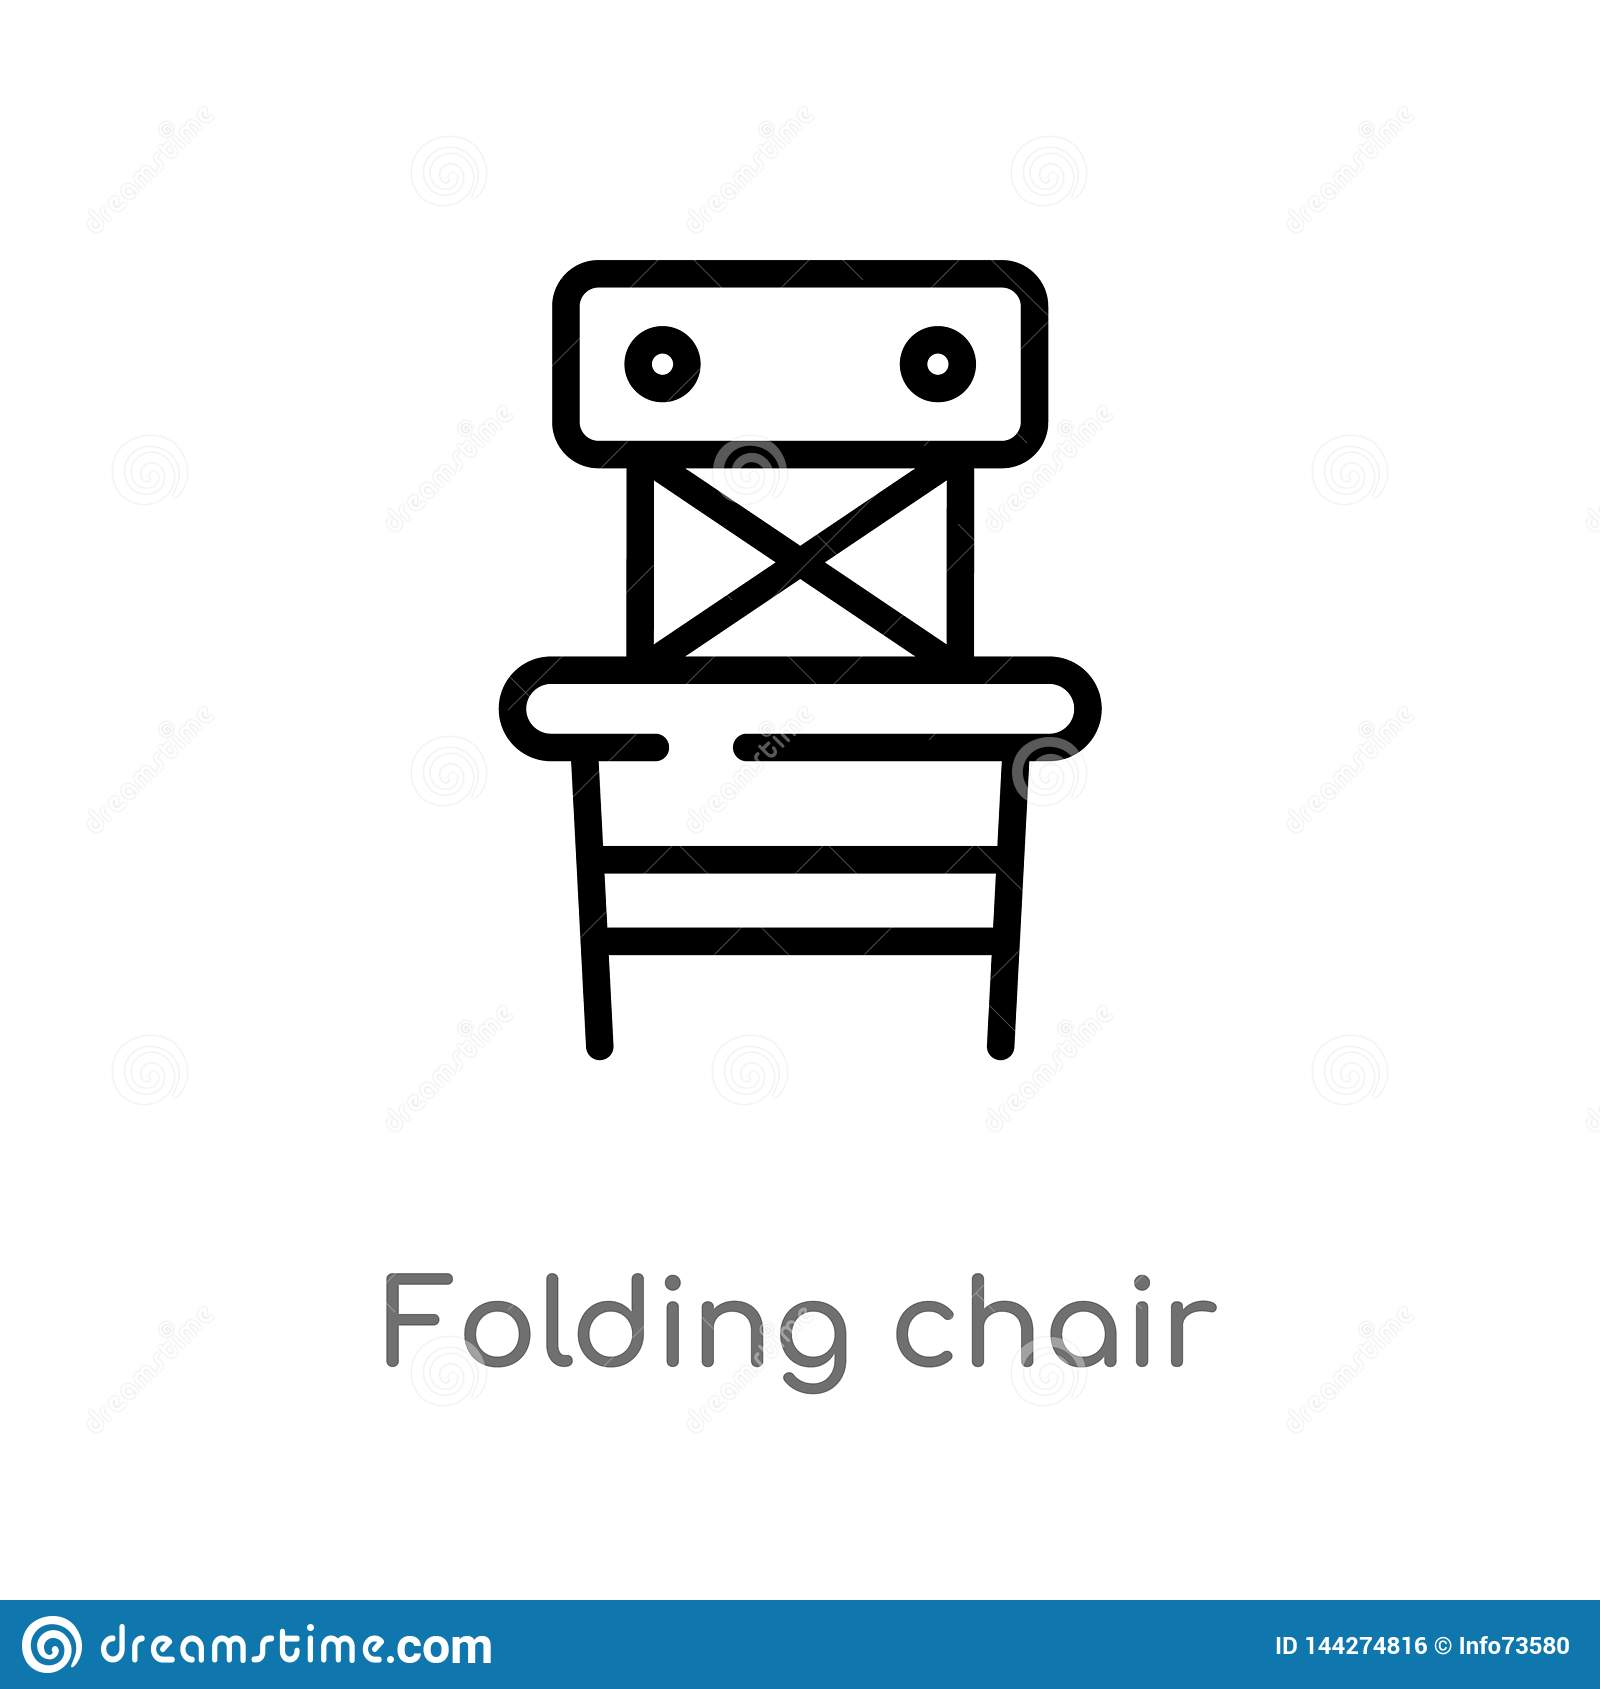 Awesome Outline Folding Chair Vector Icon Isolated Black Simple Ncnpc Chair Design For Home Ncnpcorg